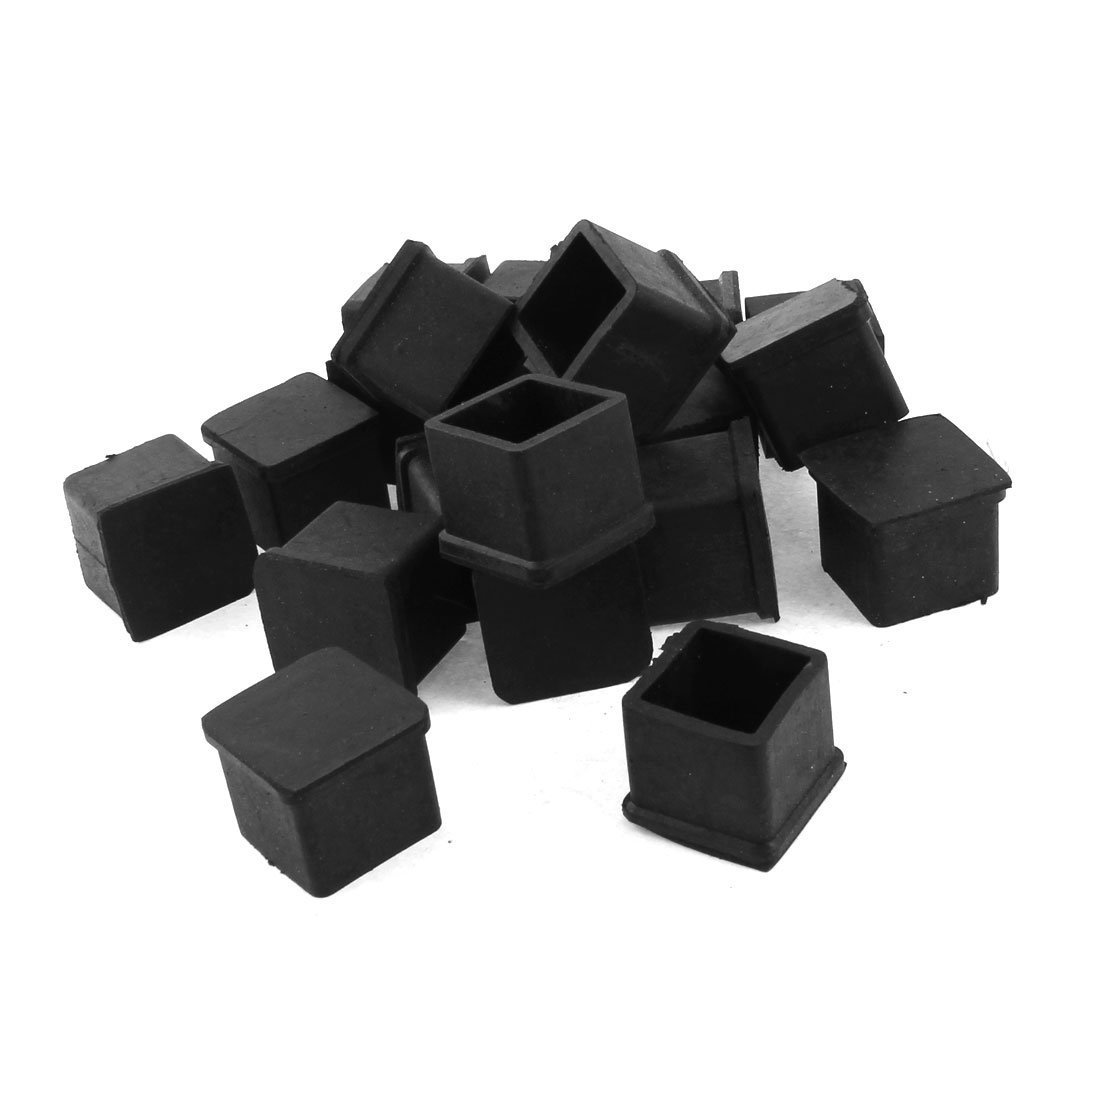 Flyshop Rubber Square Covers Chair Table Leg Pad 30mm x 30mm 20pcs Black